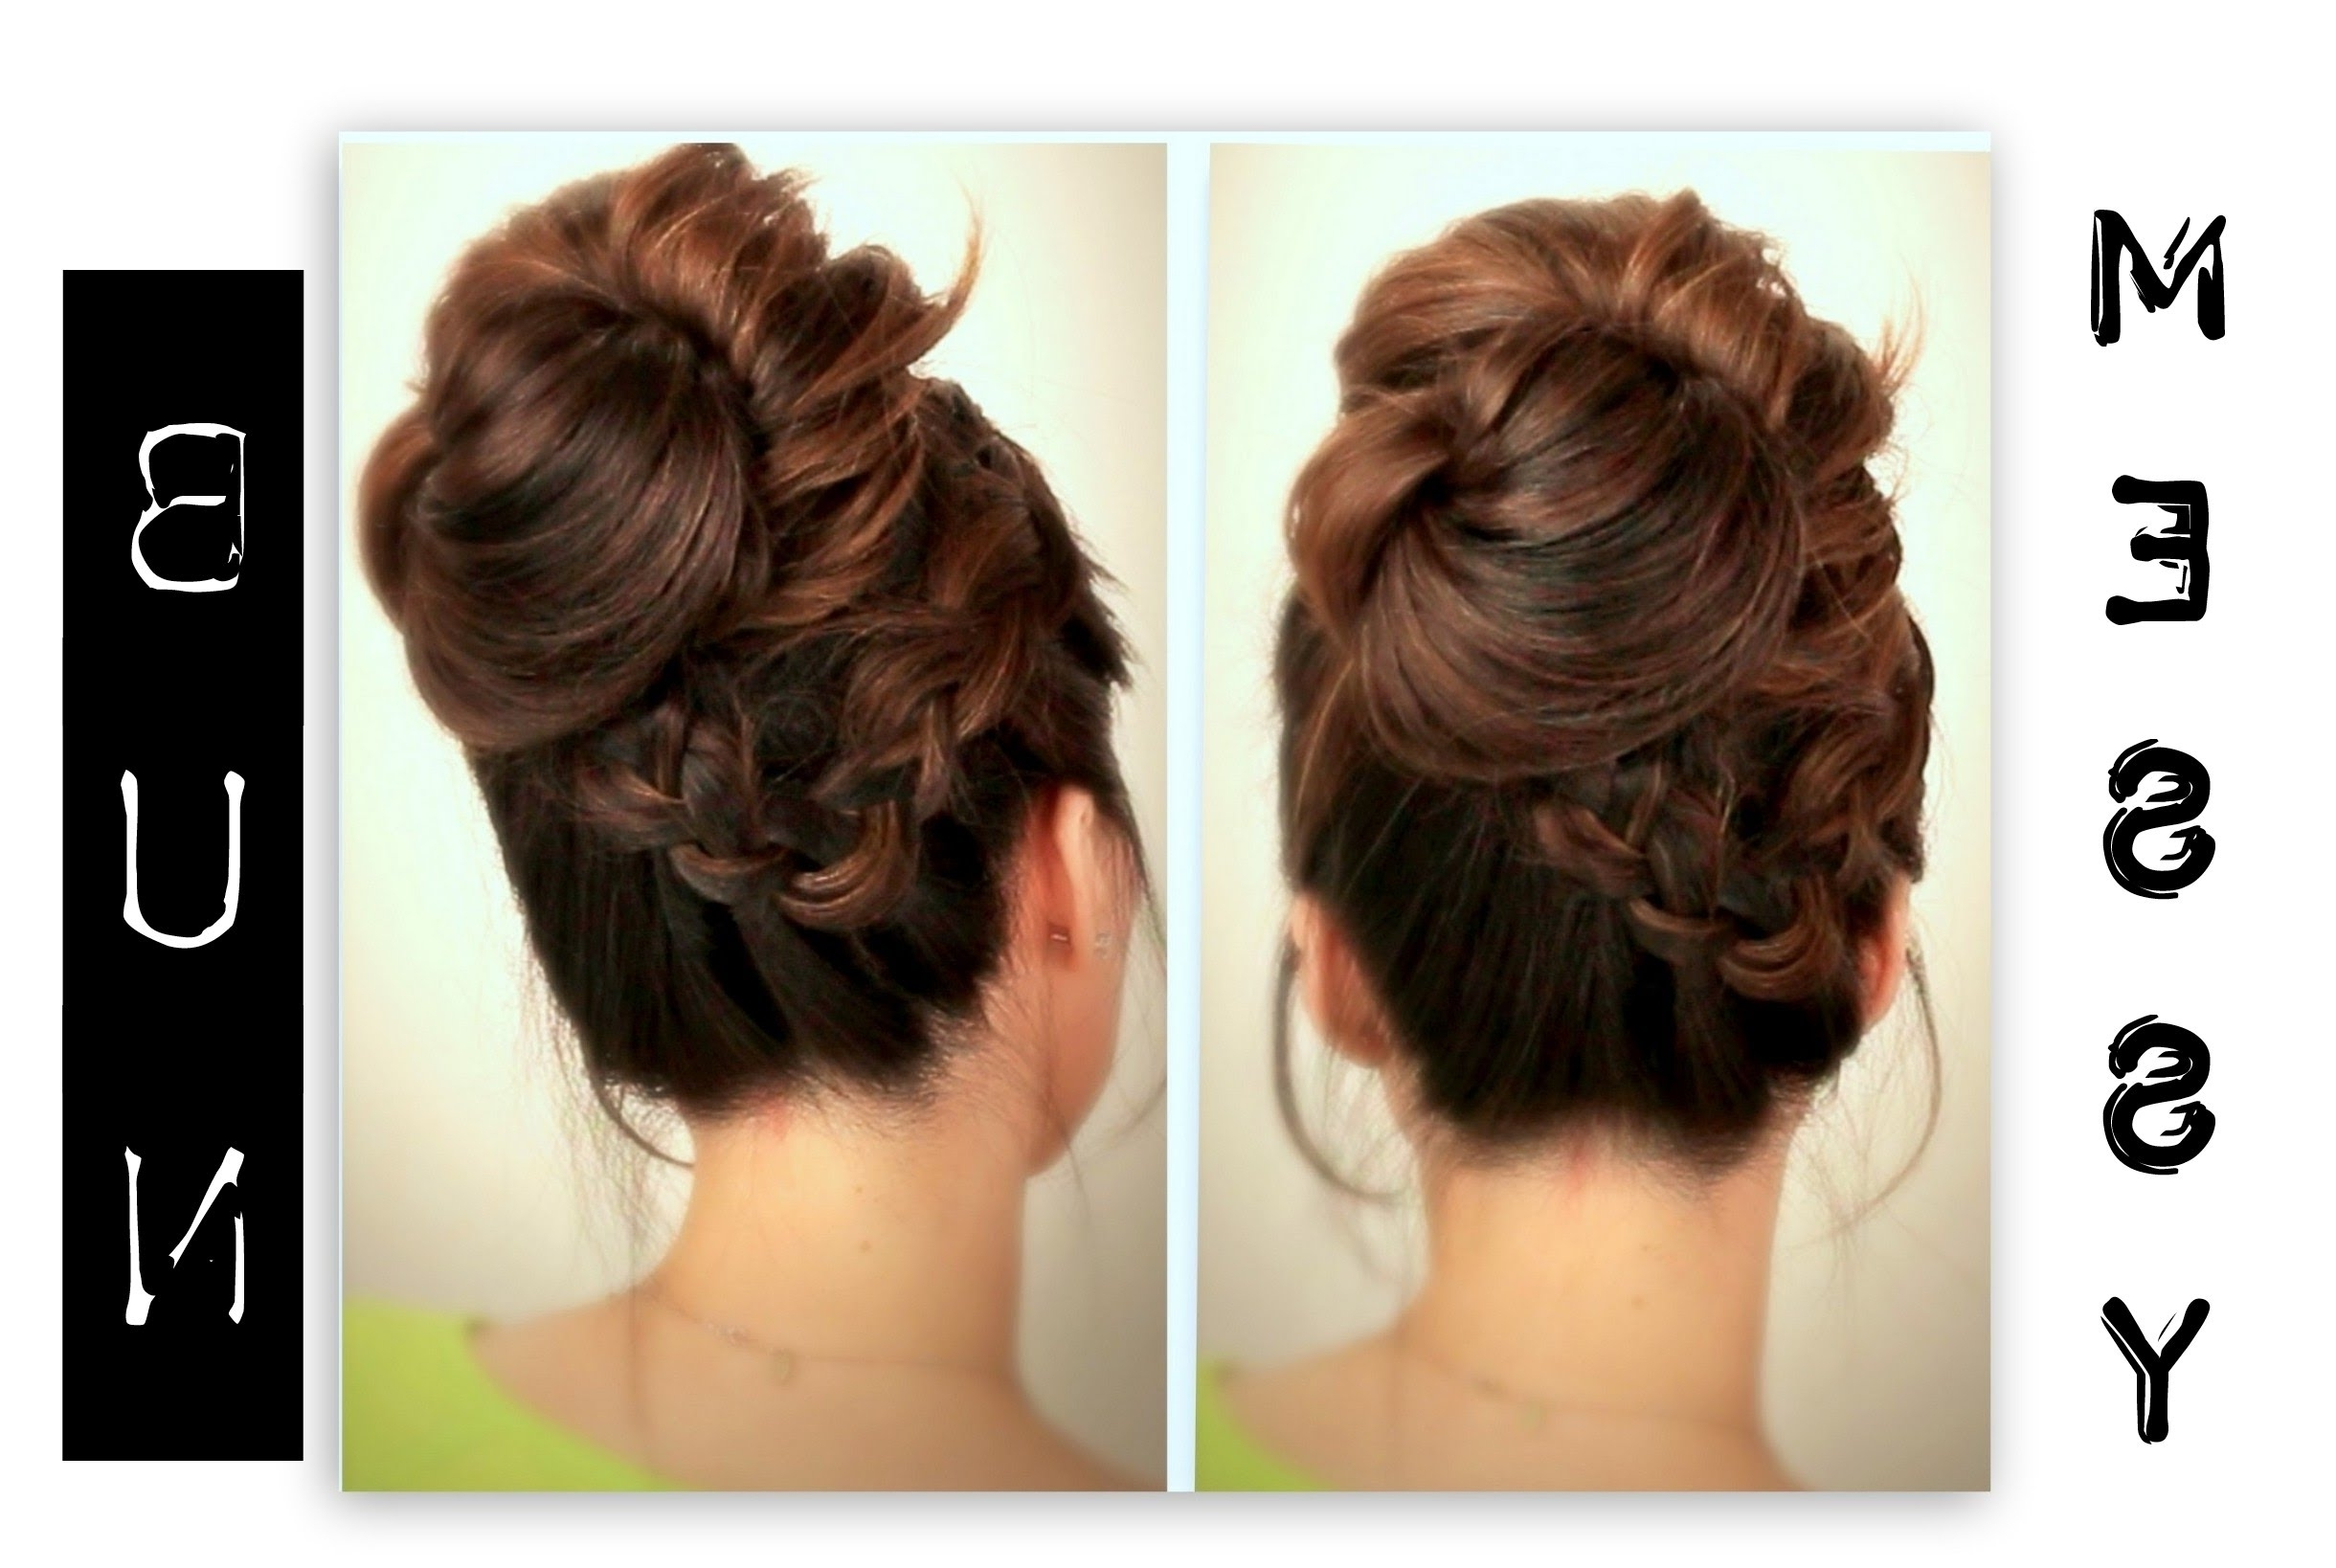 ☆ Cute, Everyday School Hairstyles | Big, Messy Bun With Braids With Regard To Easy Everyday Updo Hairstyles For Long Hair (View 6 of 15)